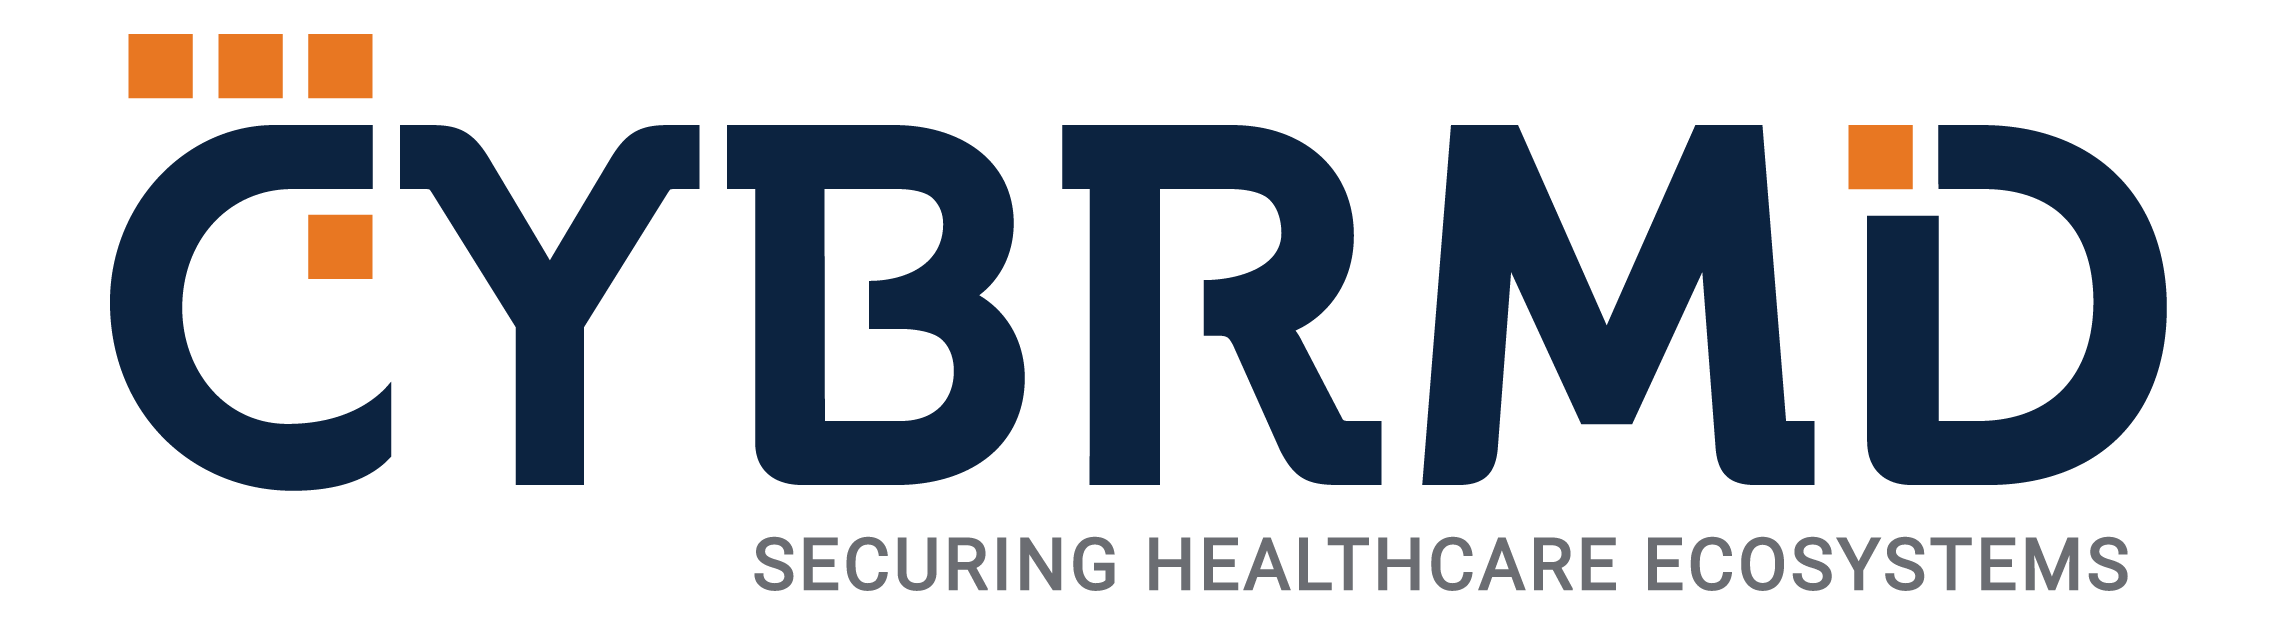 Cybrmd.co - Medical Device Cybersecurity Consulting